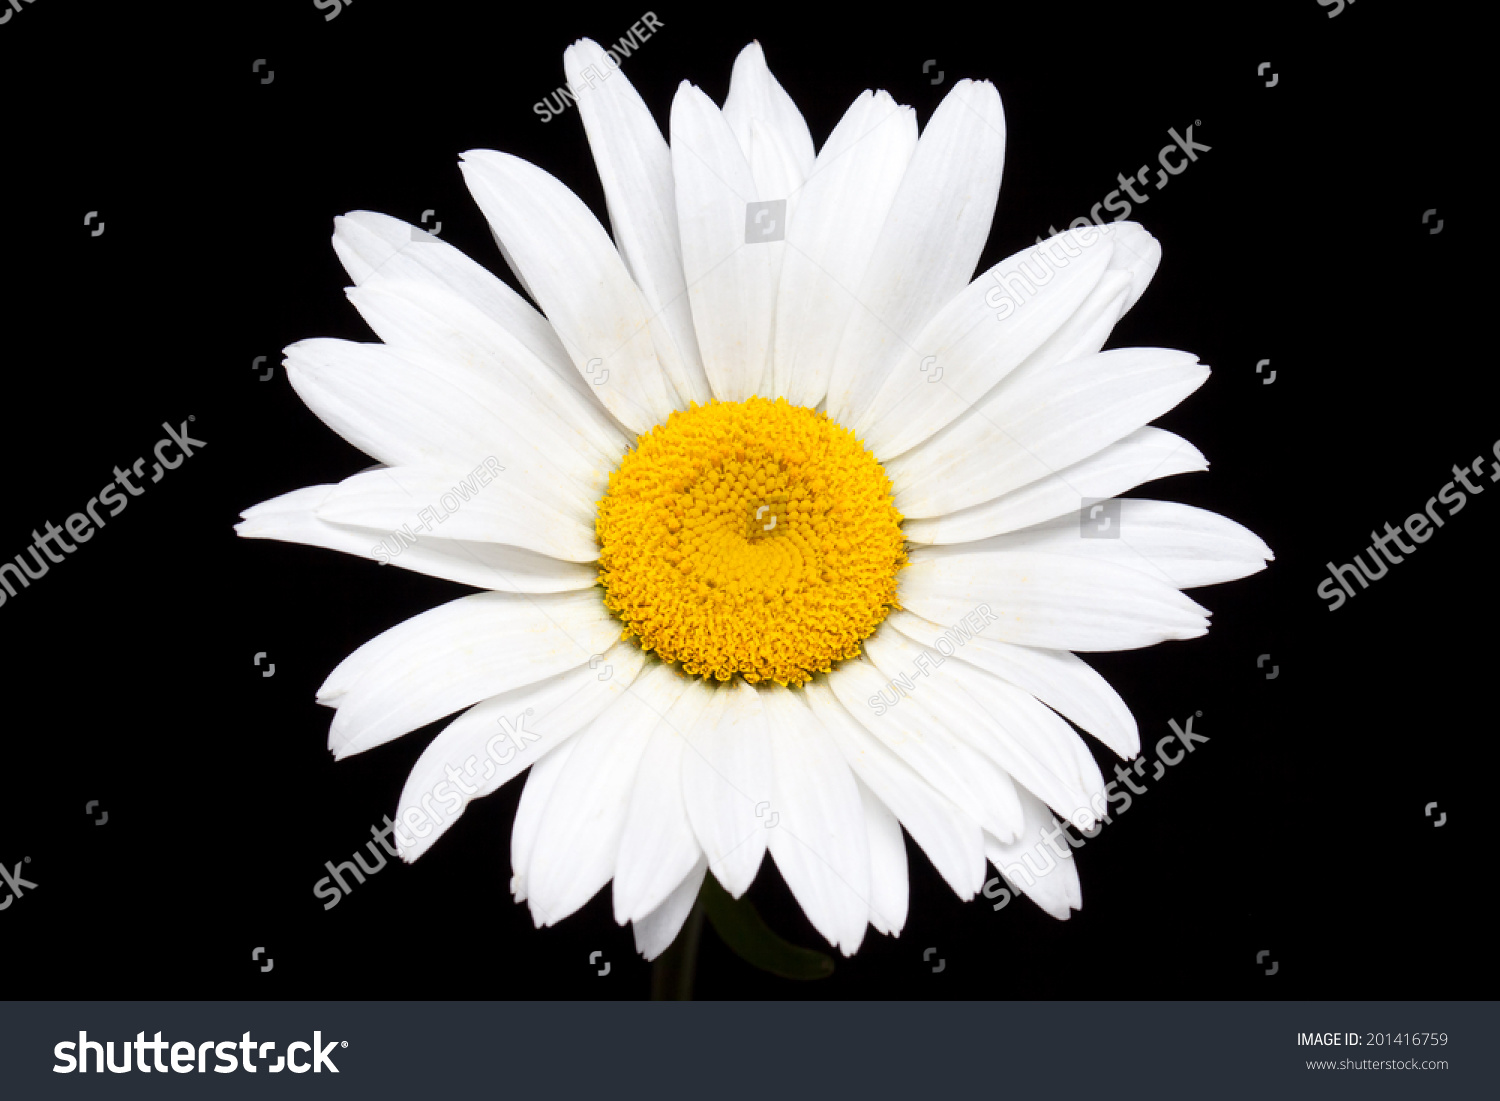 Camomile, White Daisy Flower On Black Background. Stock ...